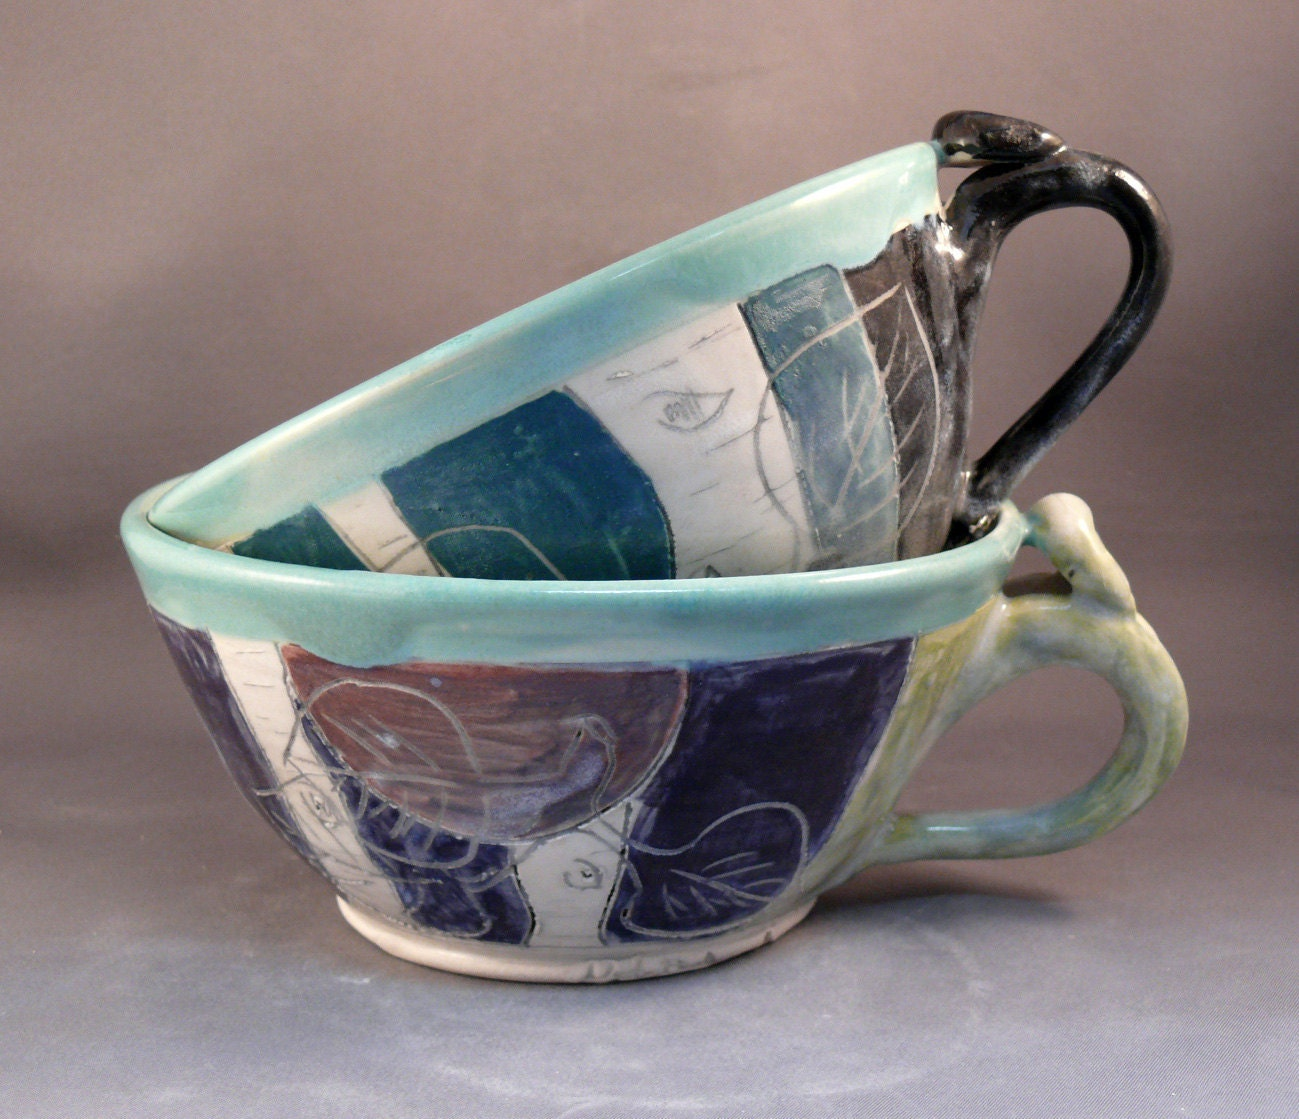 Two blue soup mugs / large latte cups teacups / woodland forest / for soup cereal ice cream chai tea latte coffee